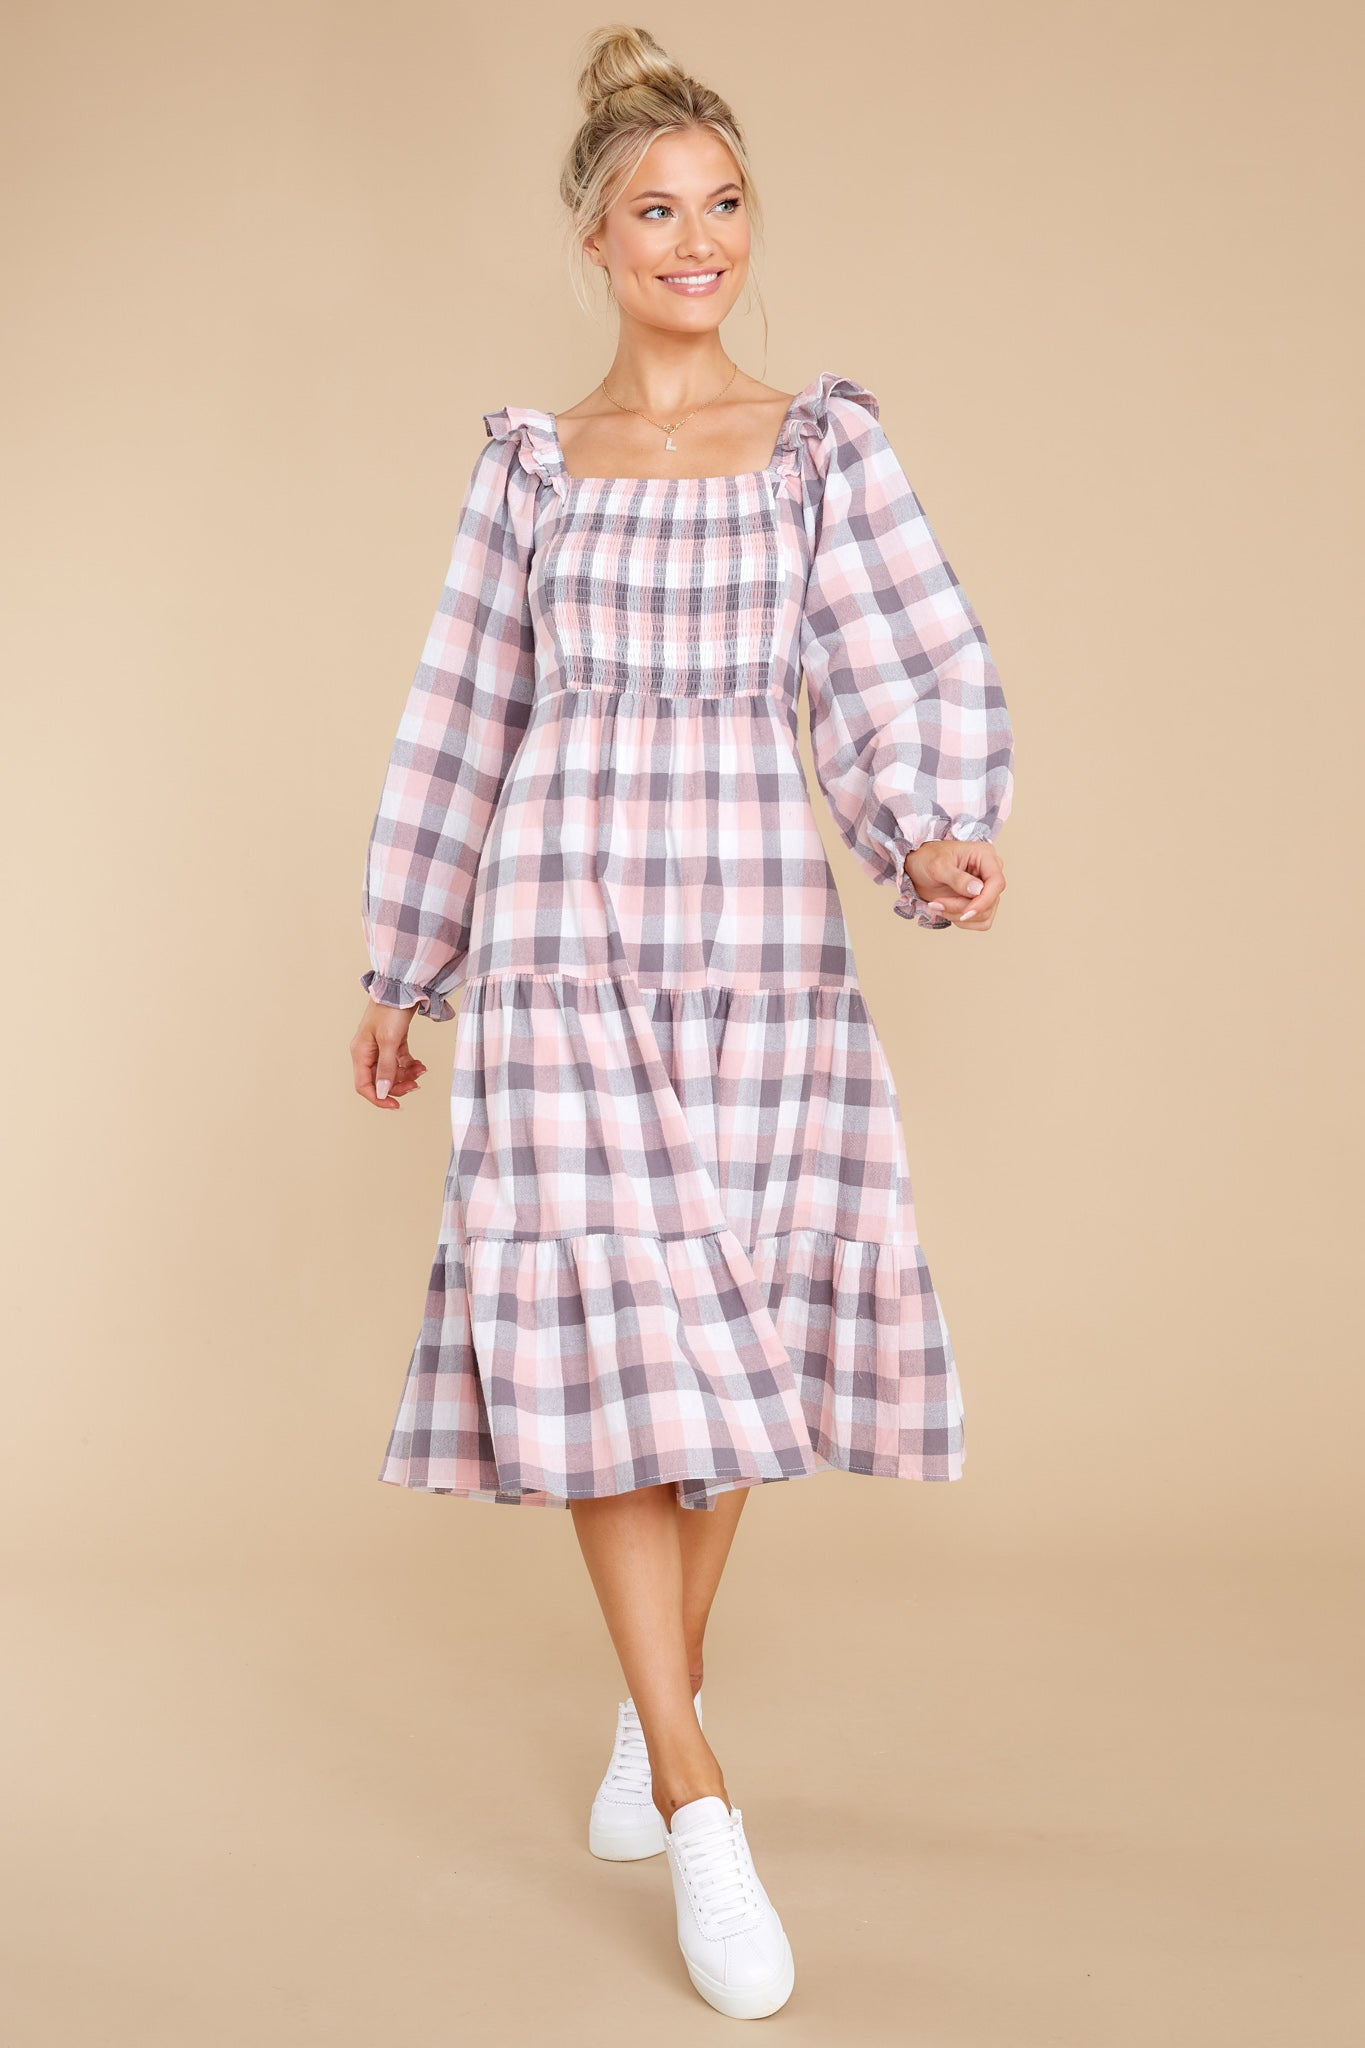 Cottagecore Clothing, Soft Aesthetic Midday Stroll Pink Plaid Midi Dress $60.00 AT vintagedancer.com